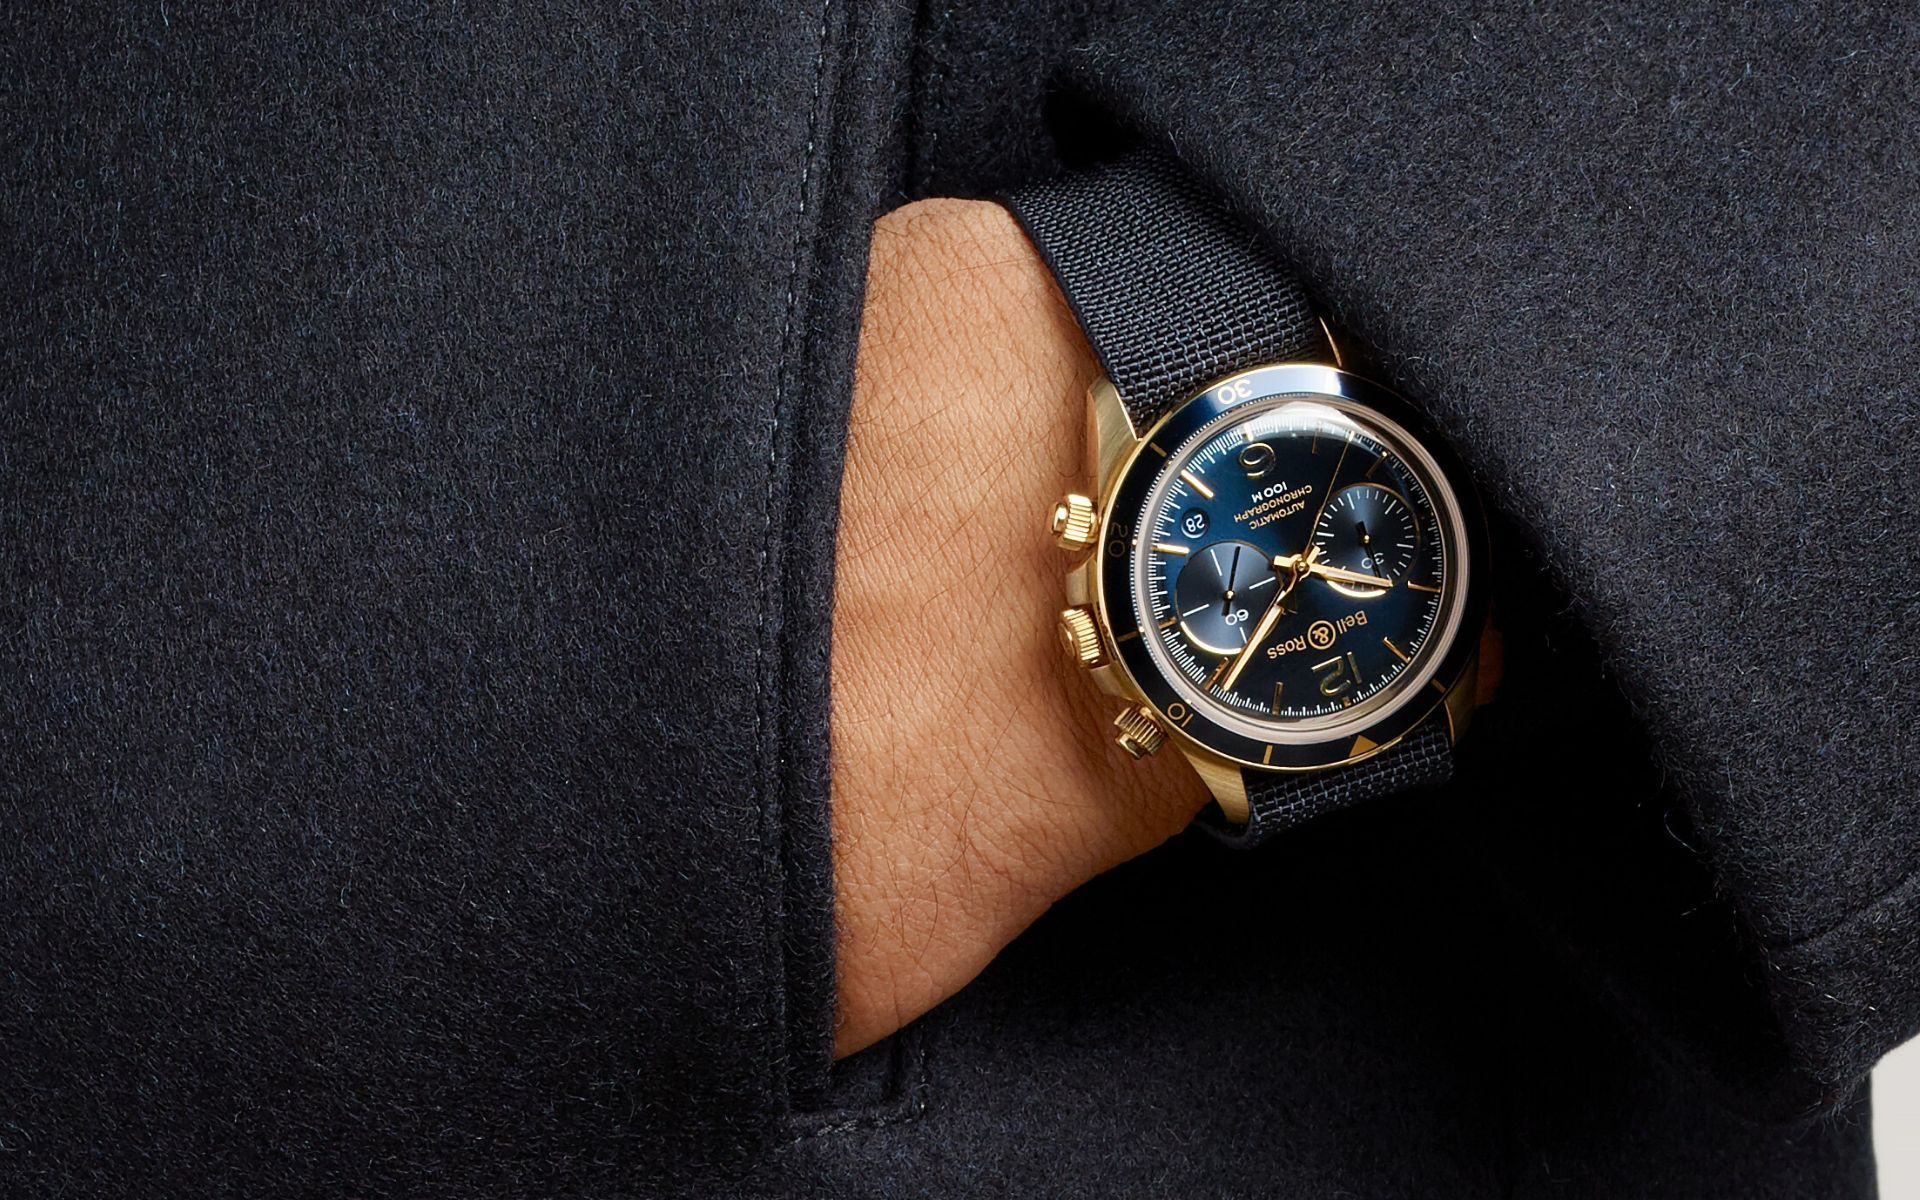 New Watches, From Bell & Ross To Vacheron Constantin, To Look Out For In March 2020